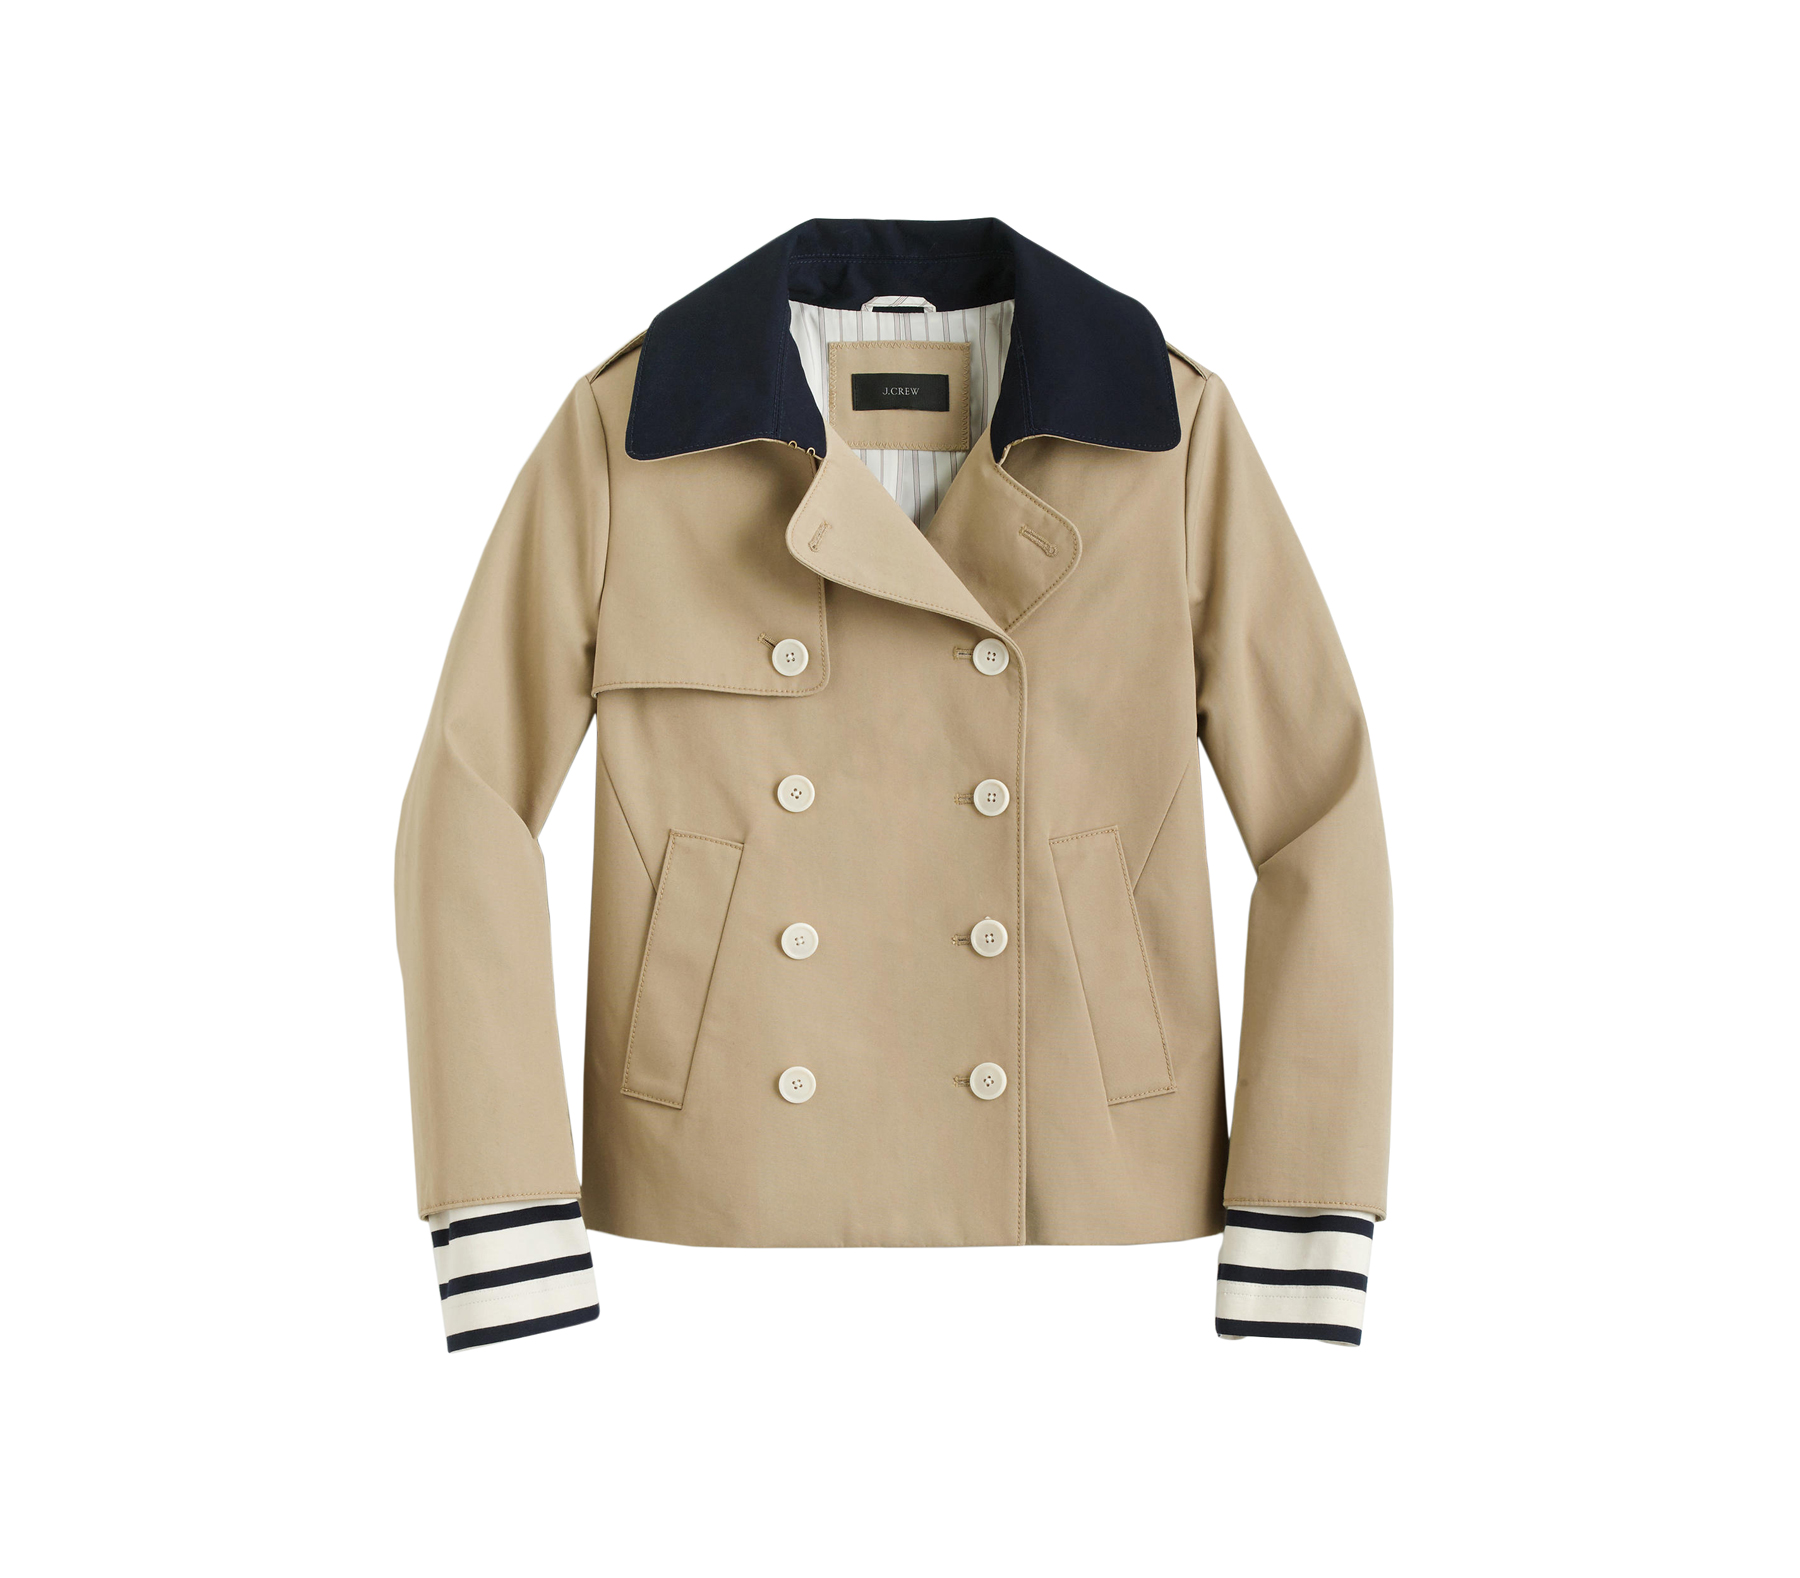 J. Crew Cropped Trench Coat with Detachable Striped Cuffs